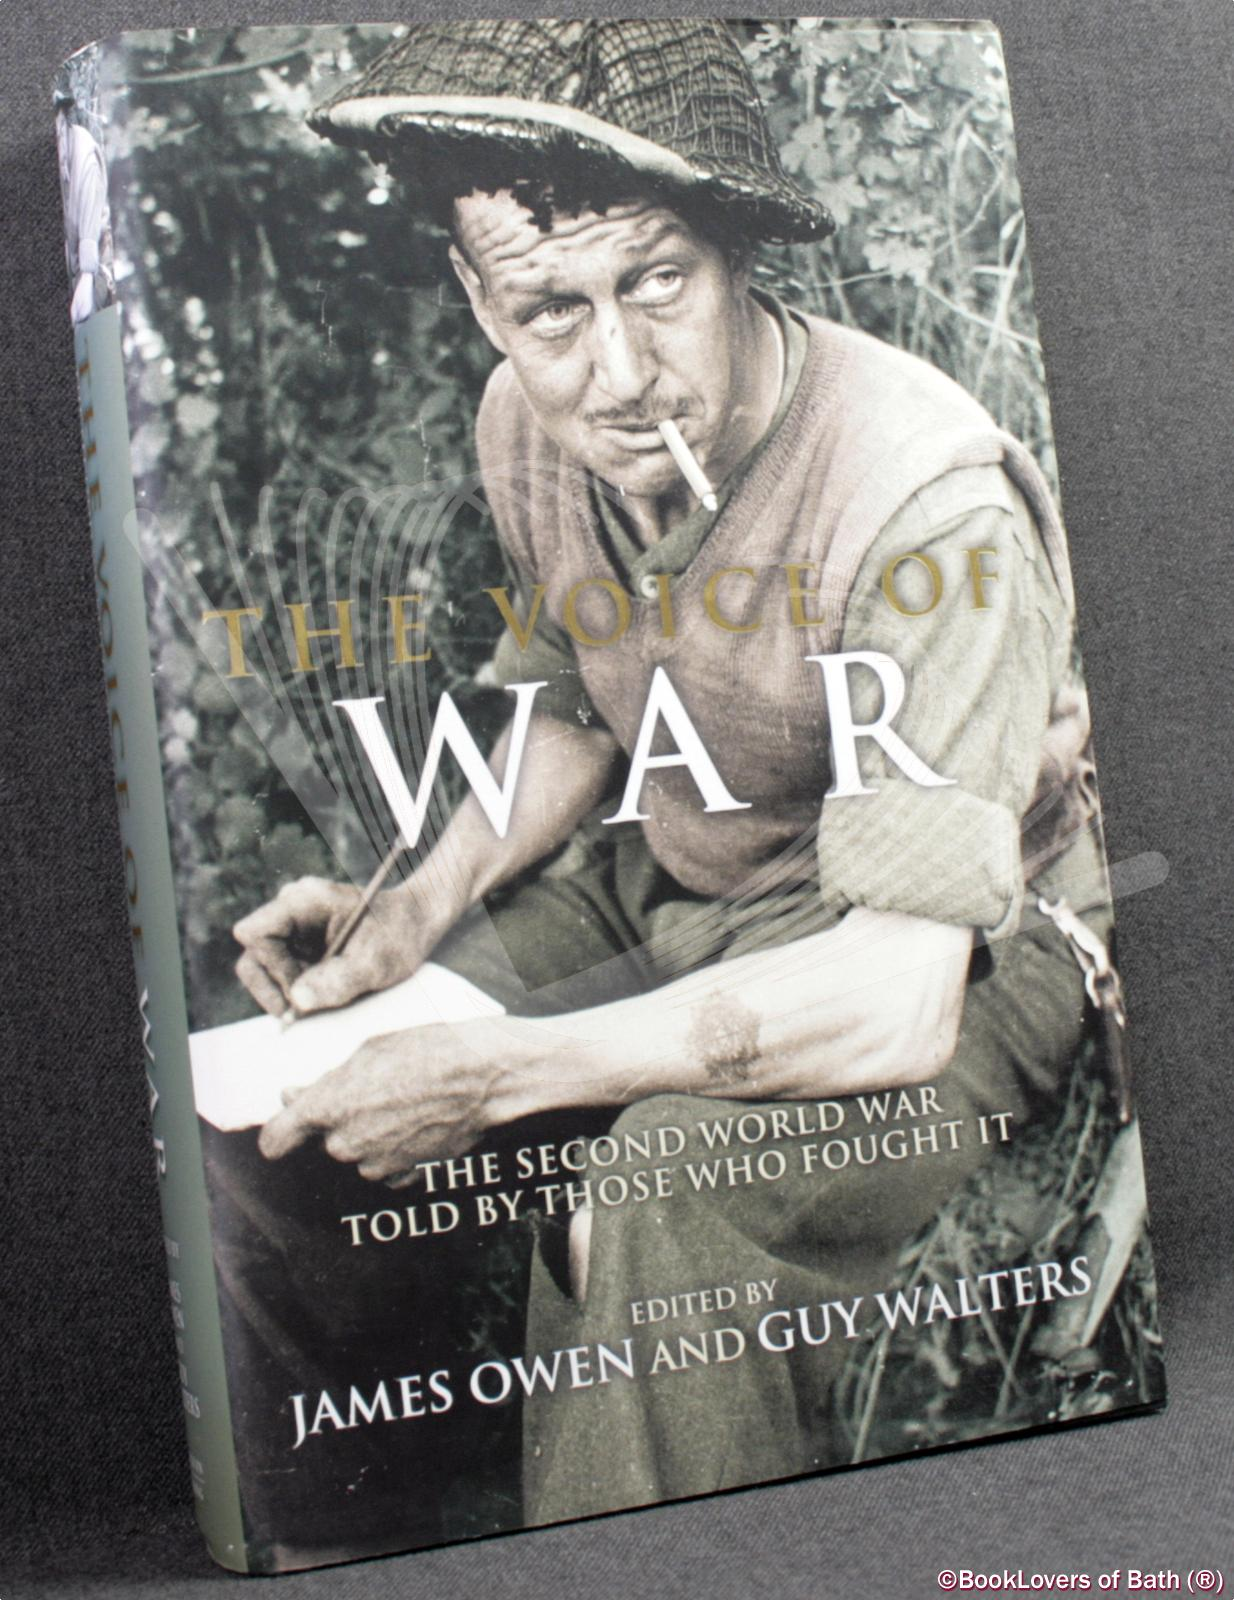 The Voice of War: The Second World War Told by Those Who Fought It - Edited by James Owen & Guy Walters